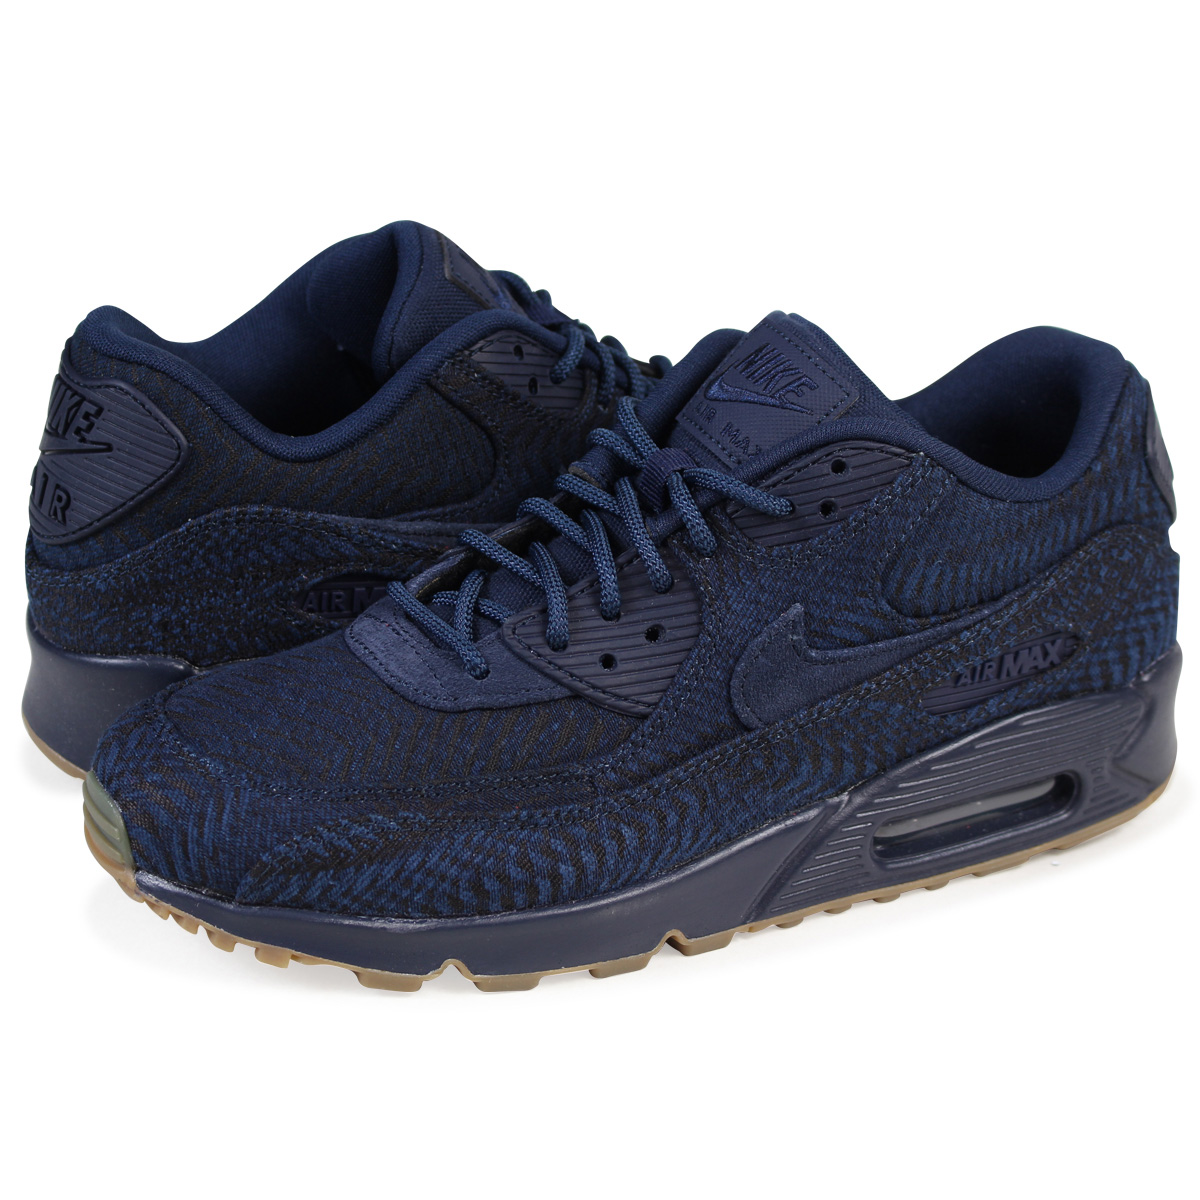 separation shoes 5bf5a a84a9 NIKE AIR MAX 90 PREMIUM JACQUARD Kie Ney AMAX 90 sneakers 918,358-400 men's  shoes navy [load planned Shinnyu load in reservation product 9/28 ...